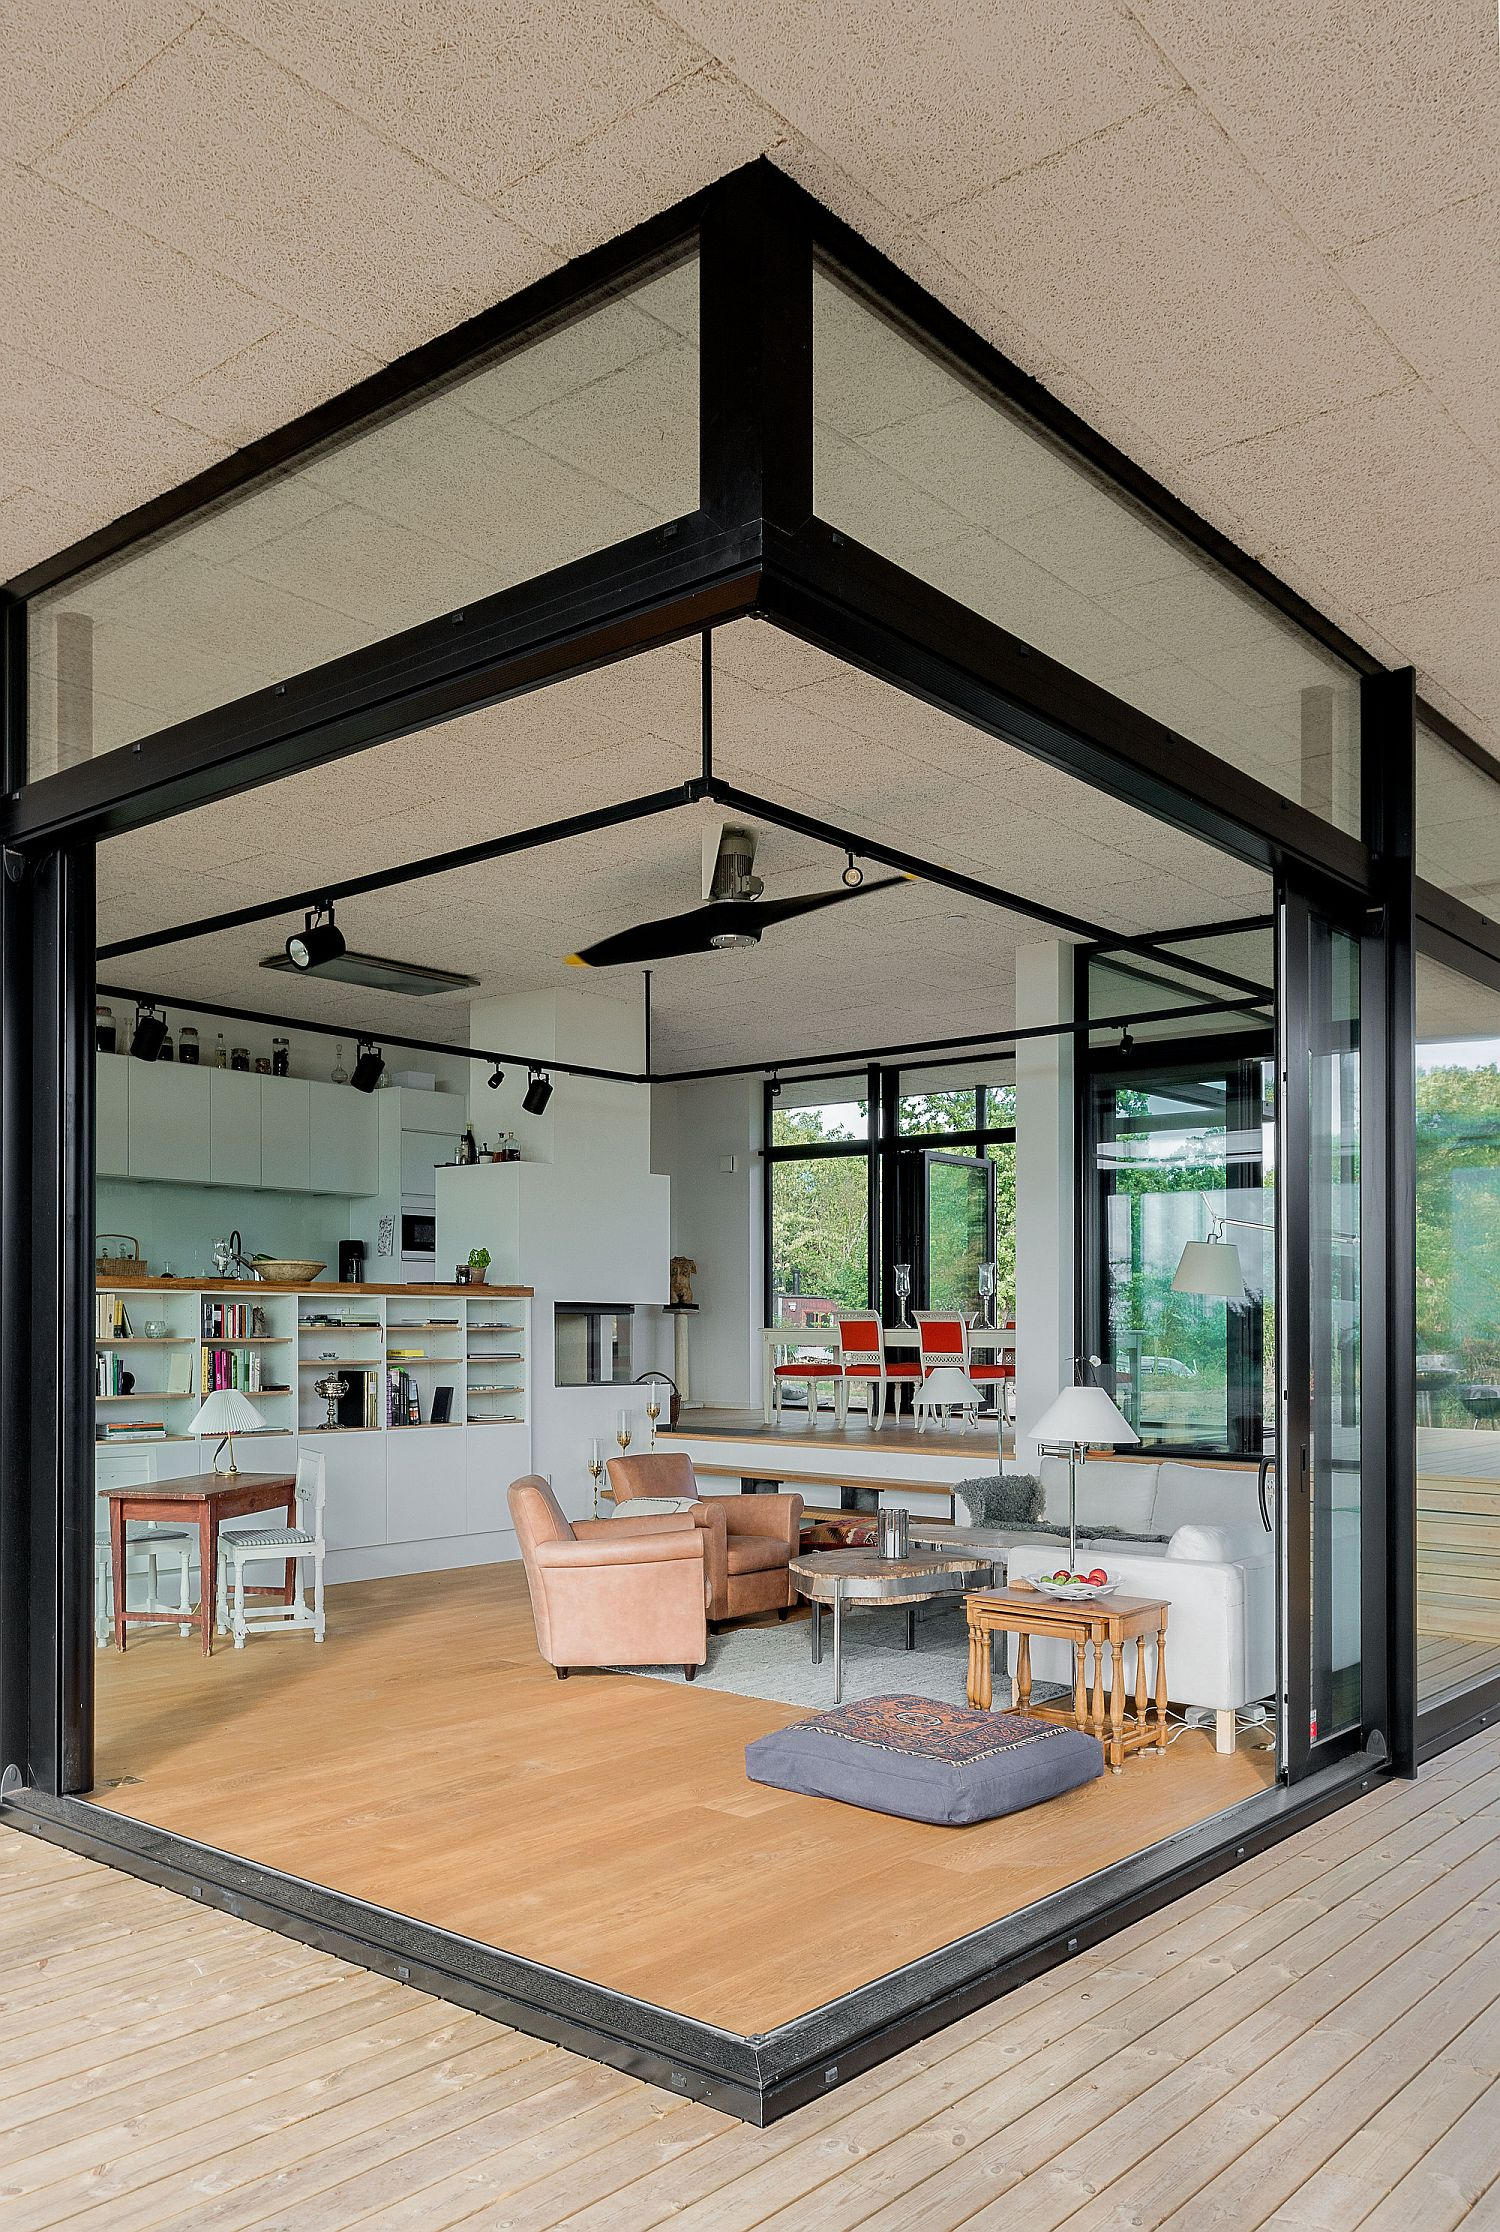 Sliding glass doors in the corner open the living room completely to the world outside